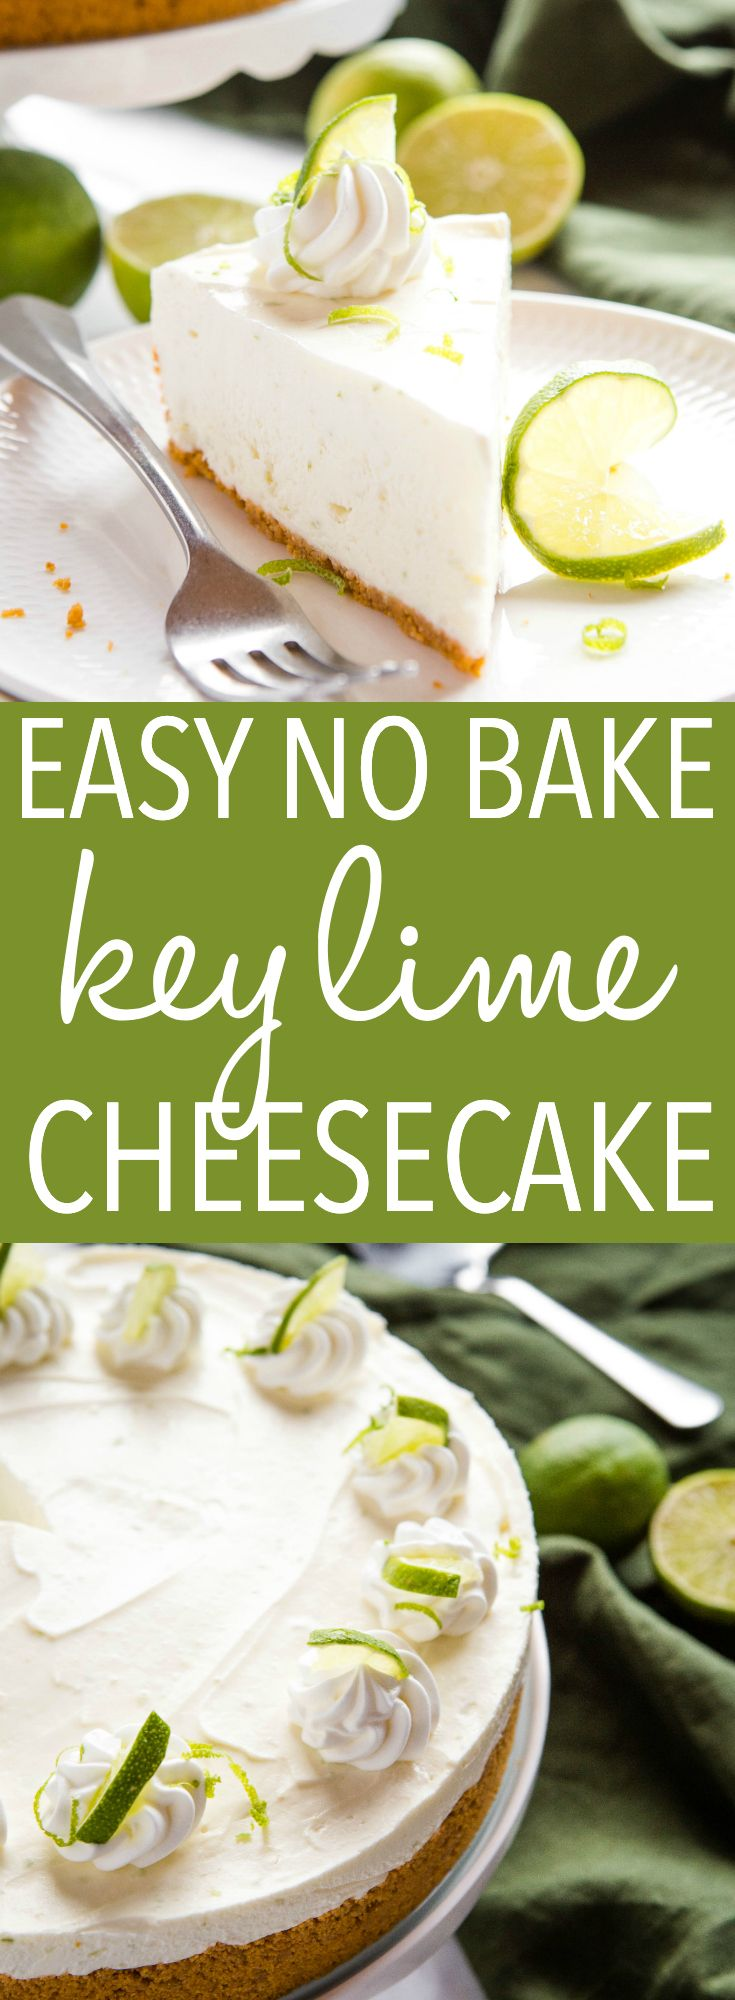 Easy No Bake Key Lime Cheesecake Recipe Desserts Lime Cheesecake Delicious Desserts